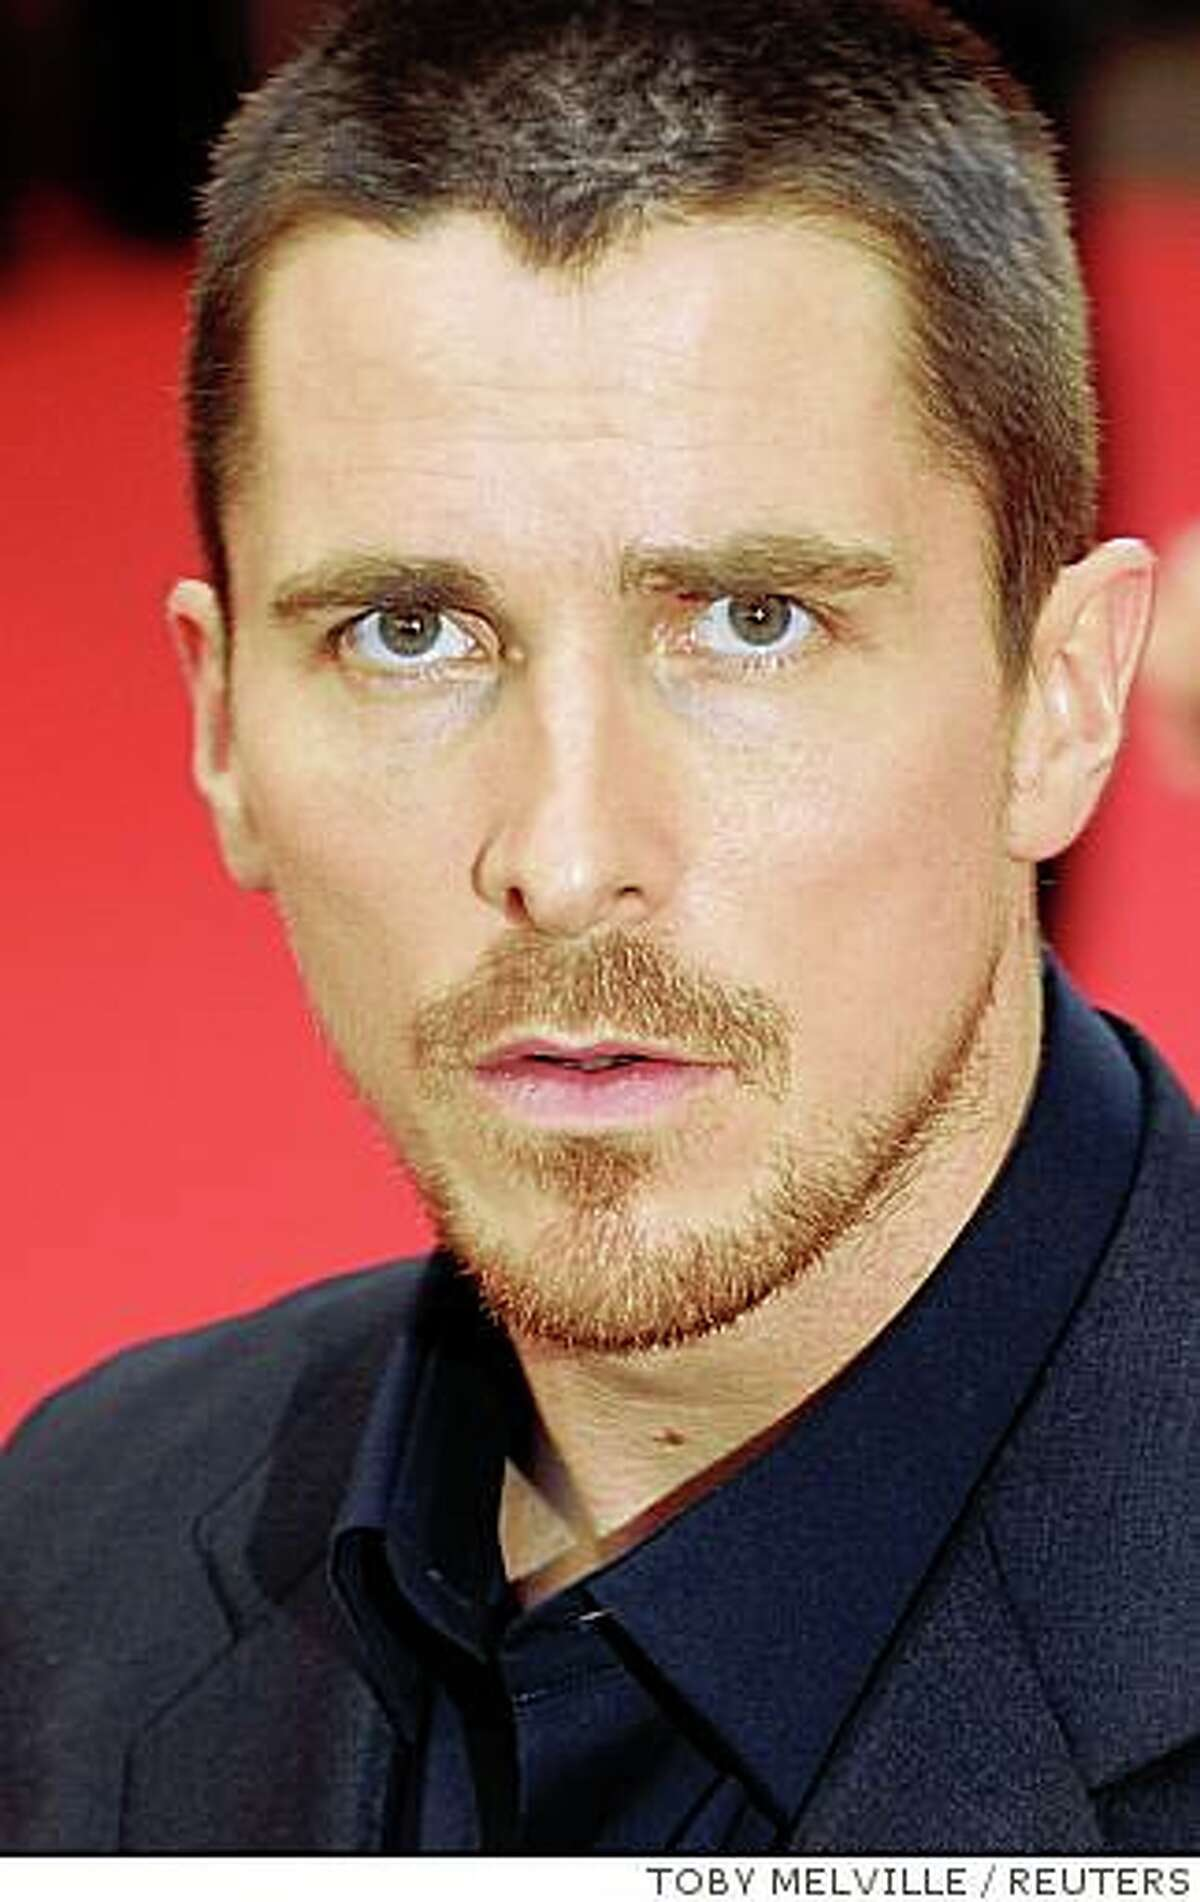 British actor Christian Bale arrives for the European premiere of